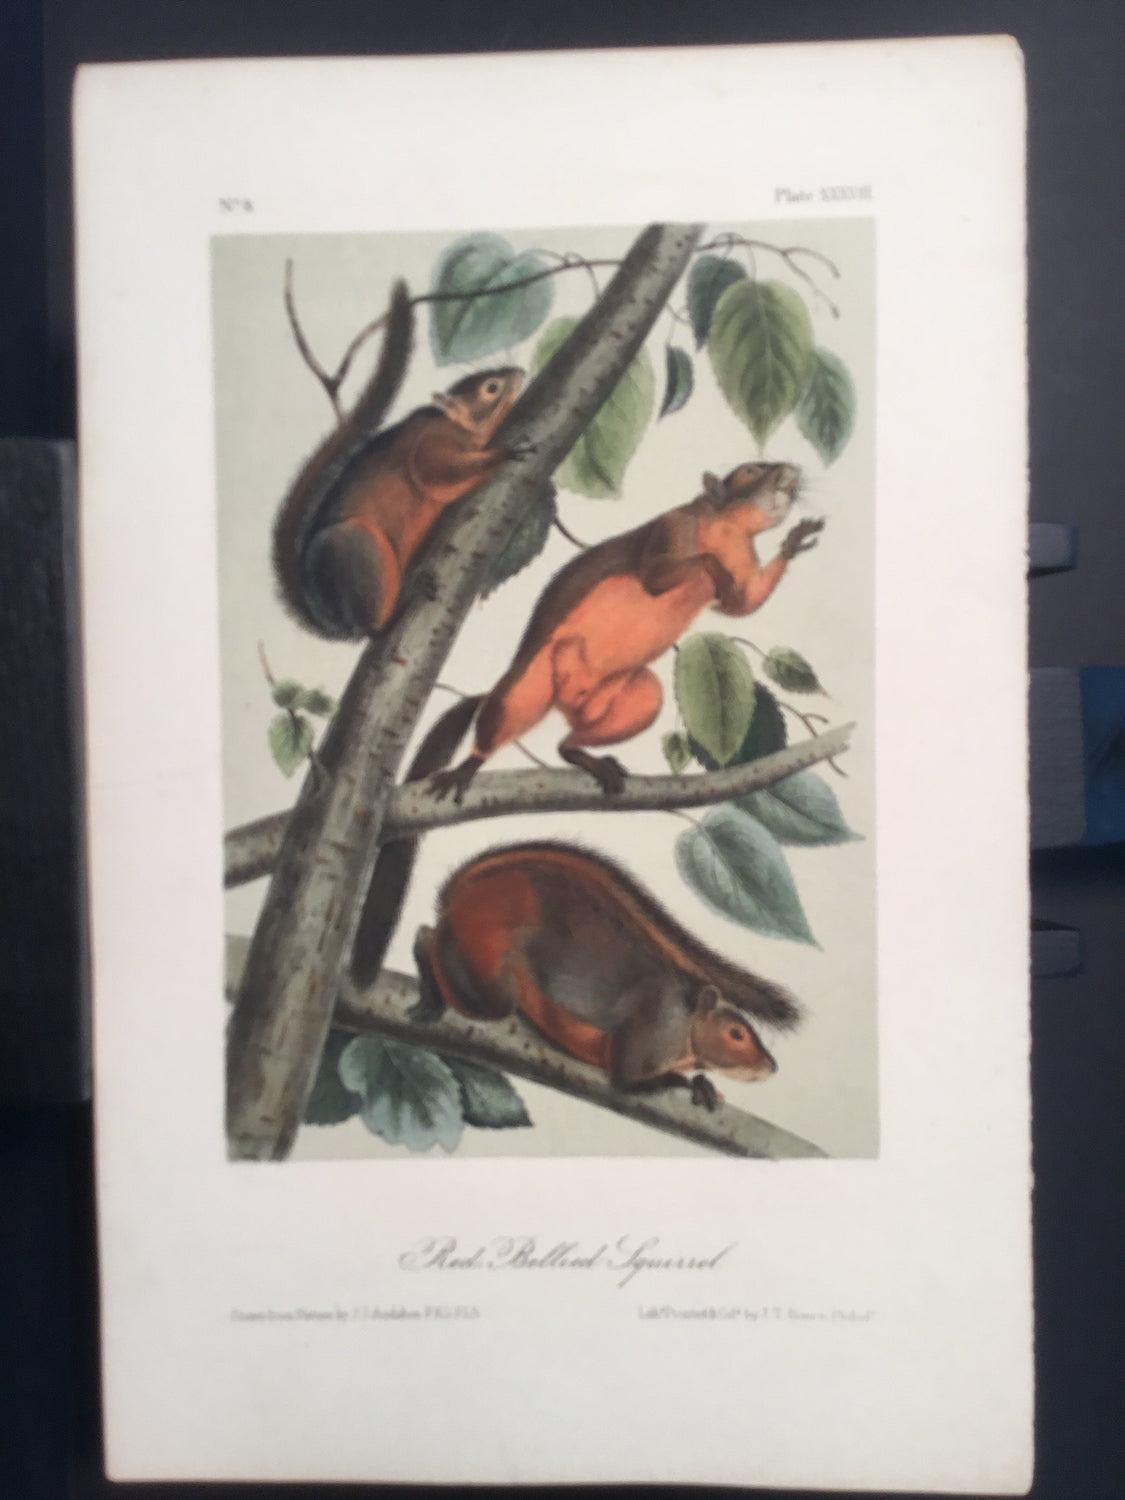 Lord-Hopkins Collection - Red-bellied Squirrel